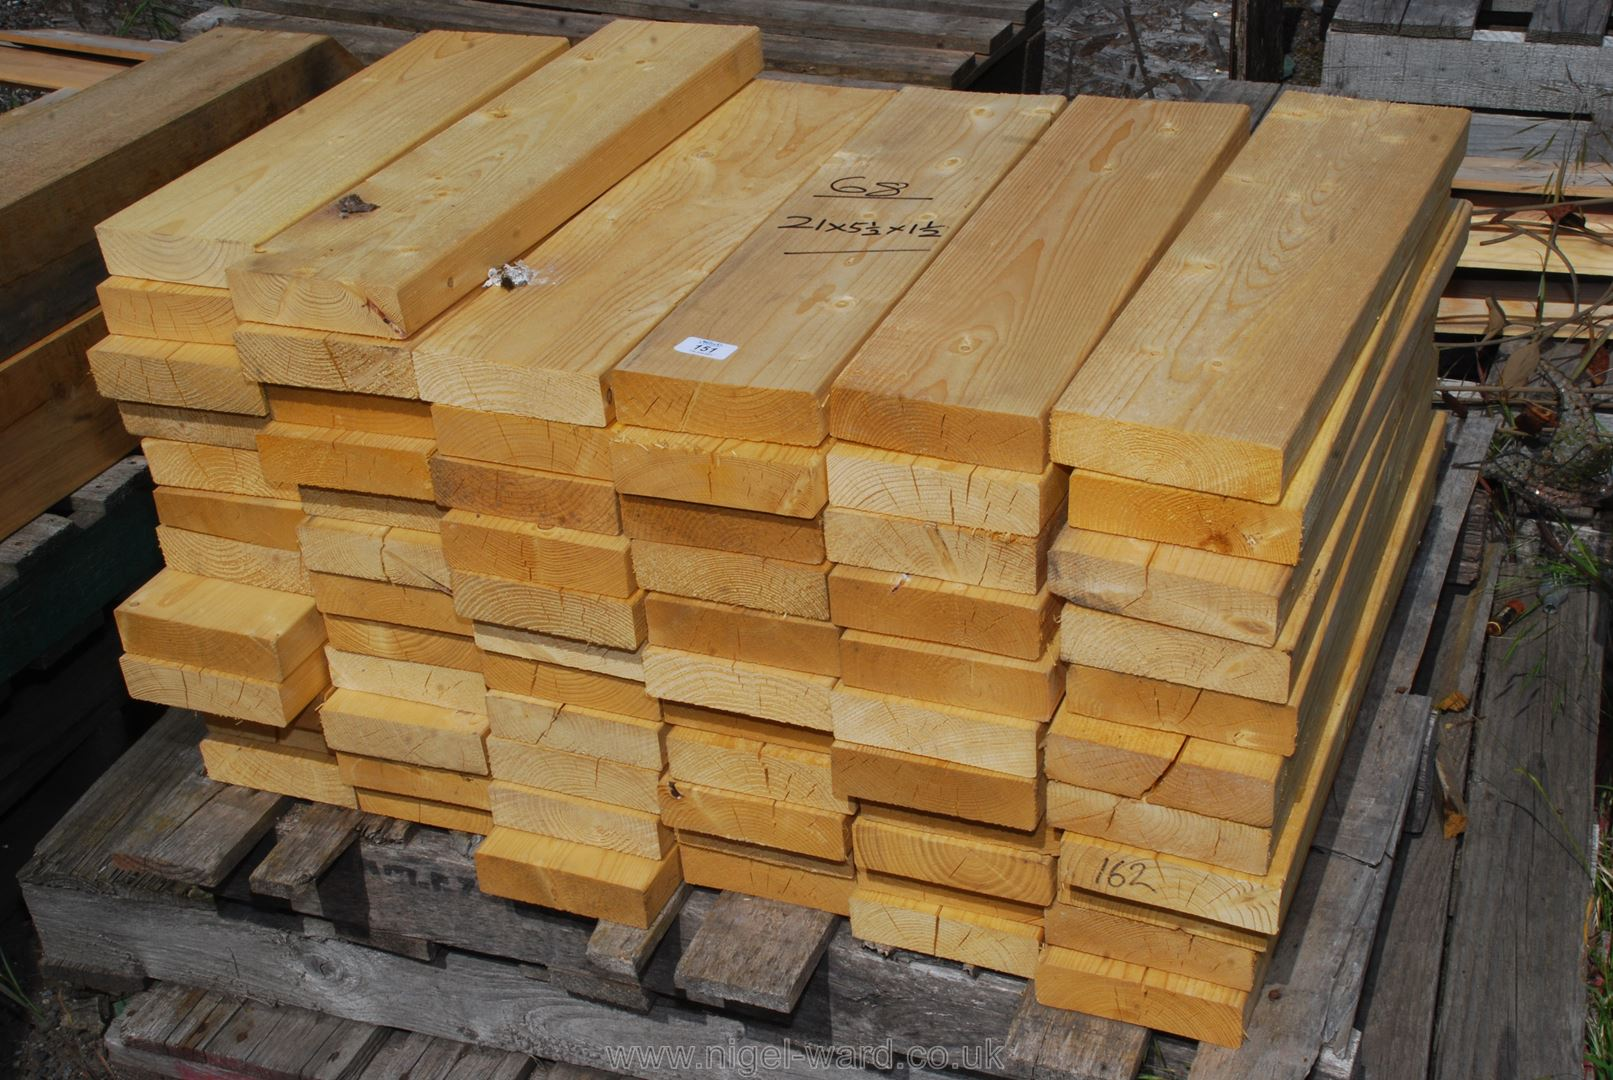 Approx. 68 lengths of CLS timber, 21'' x 5 1/2'' x 1 1/2''.